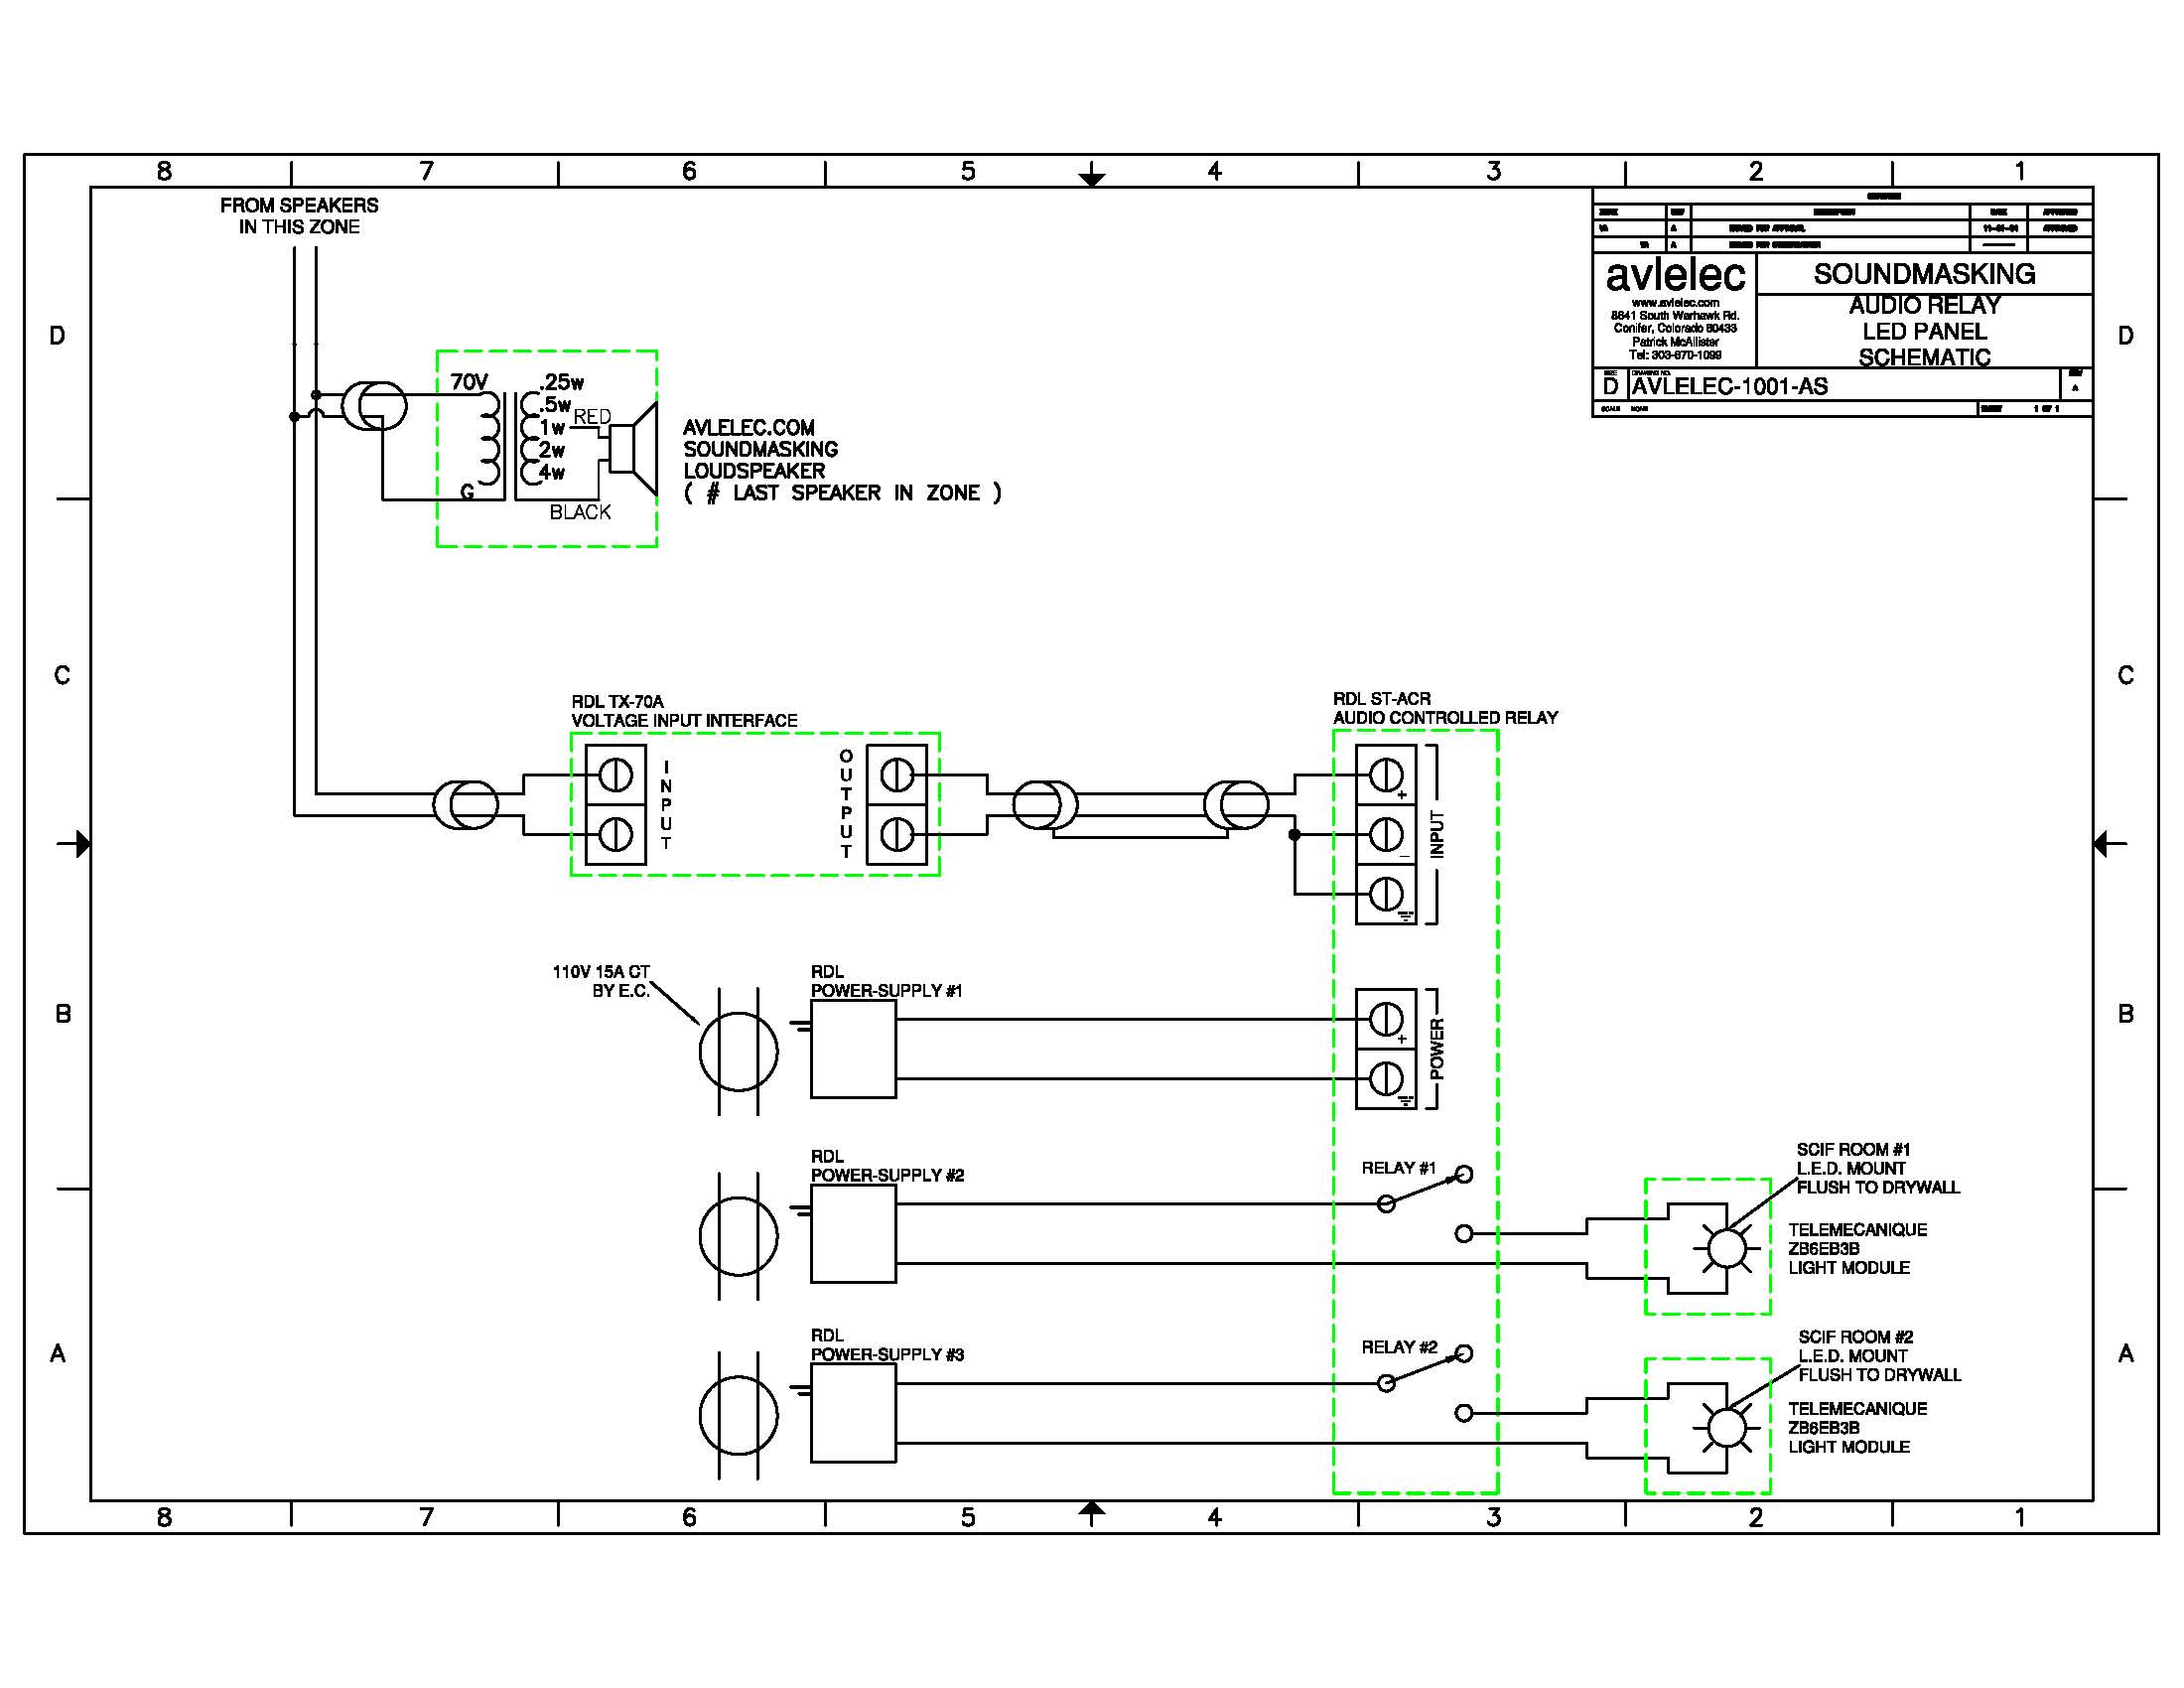 ansi wiring diagram ansi wiring diagrams